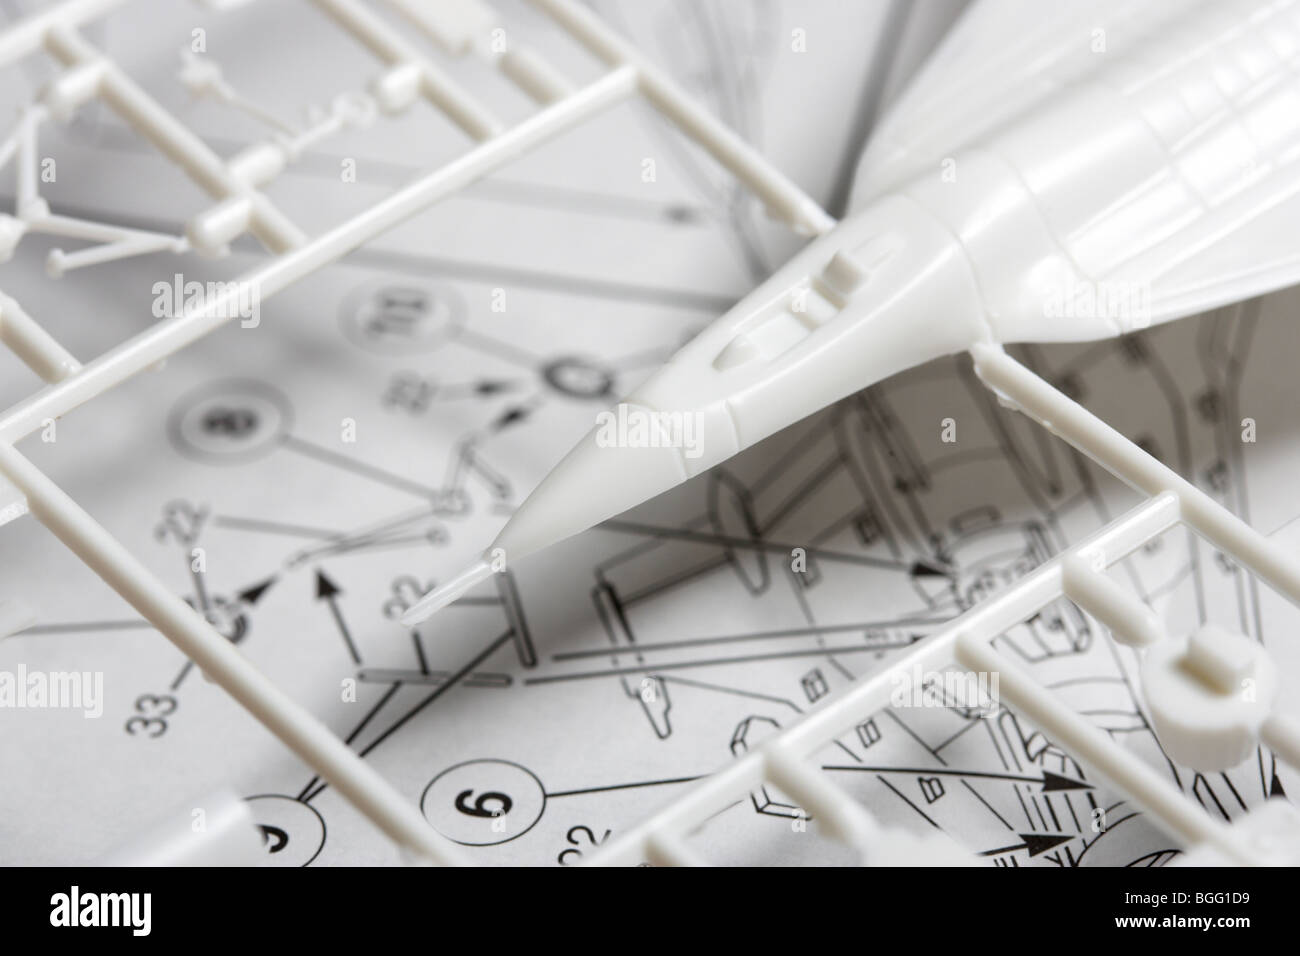 toy plane construction kit with instructions - Stock Image